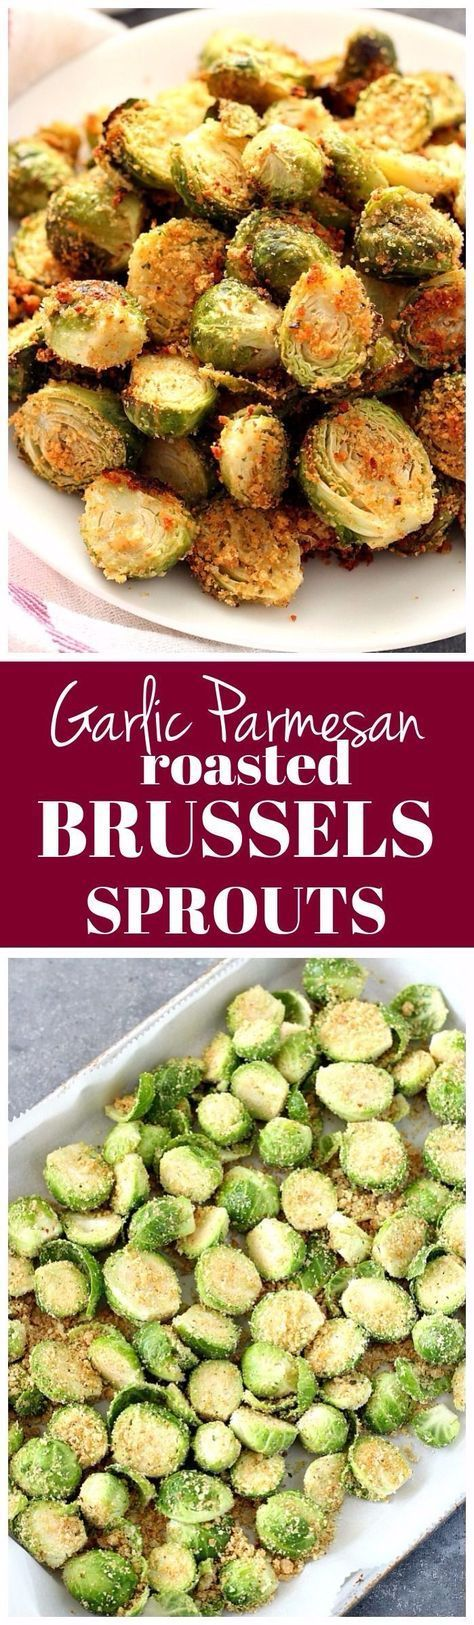 Garlic Parmesan Roasted Brussels Sprouts Recipe - fragrant and flavorful vegetable side dish. Perfectly roasted Brussels sprouts with Parmesan breadcrumbs coating and spices.